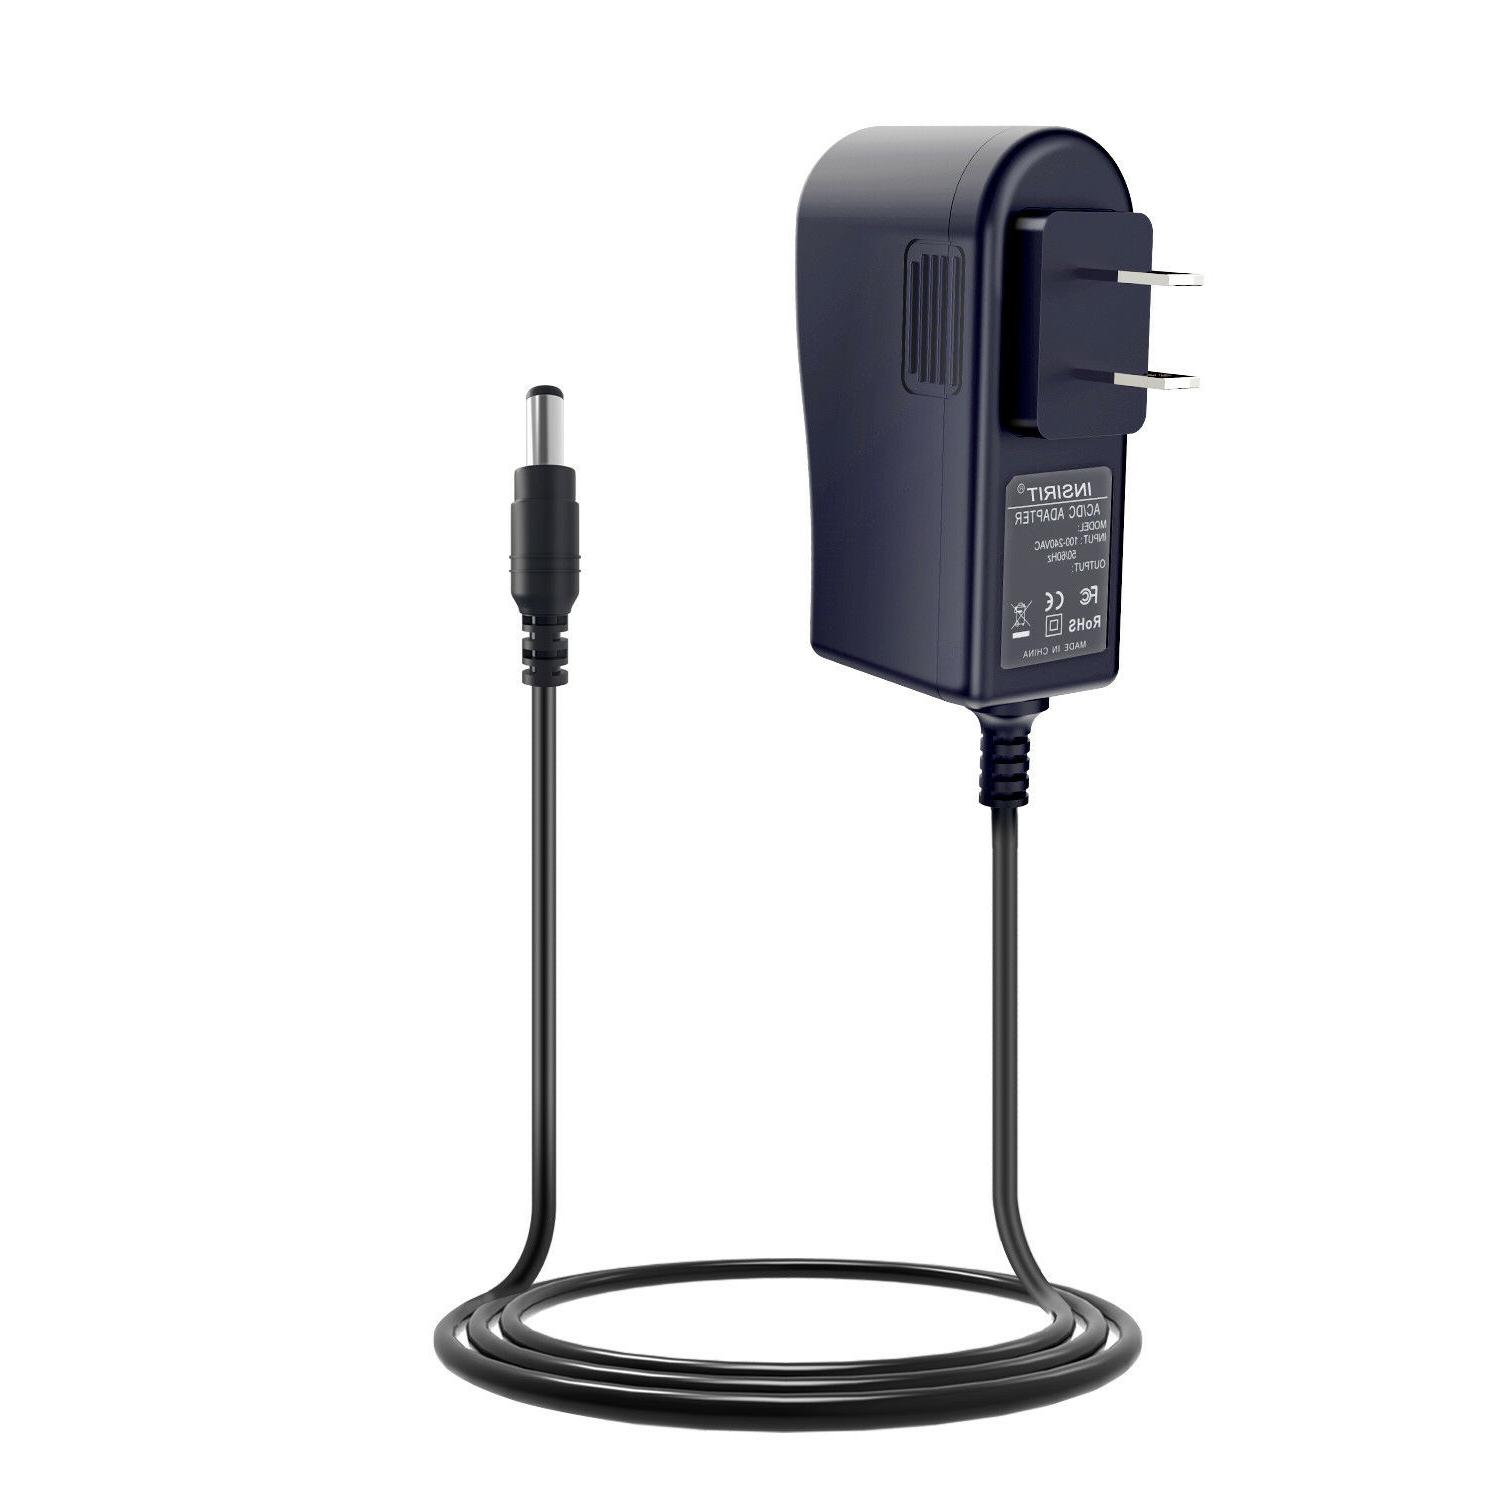 ac power adapter for proform hybrid trainer